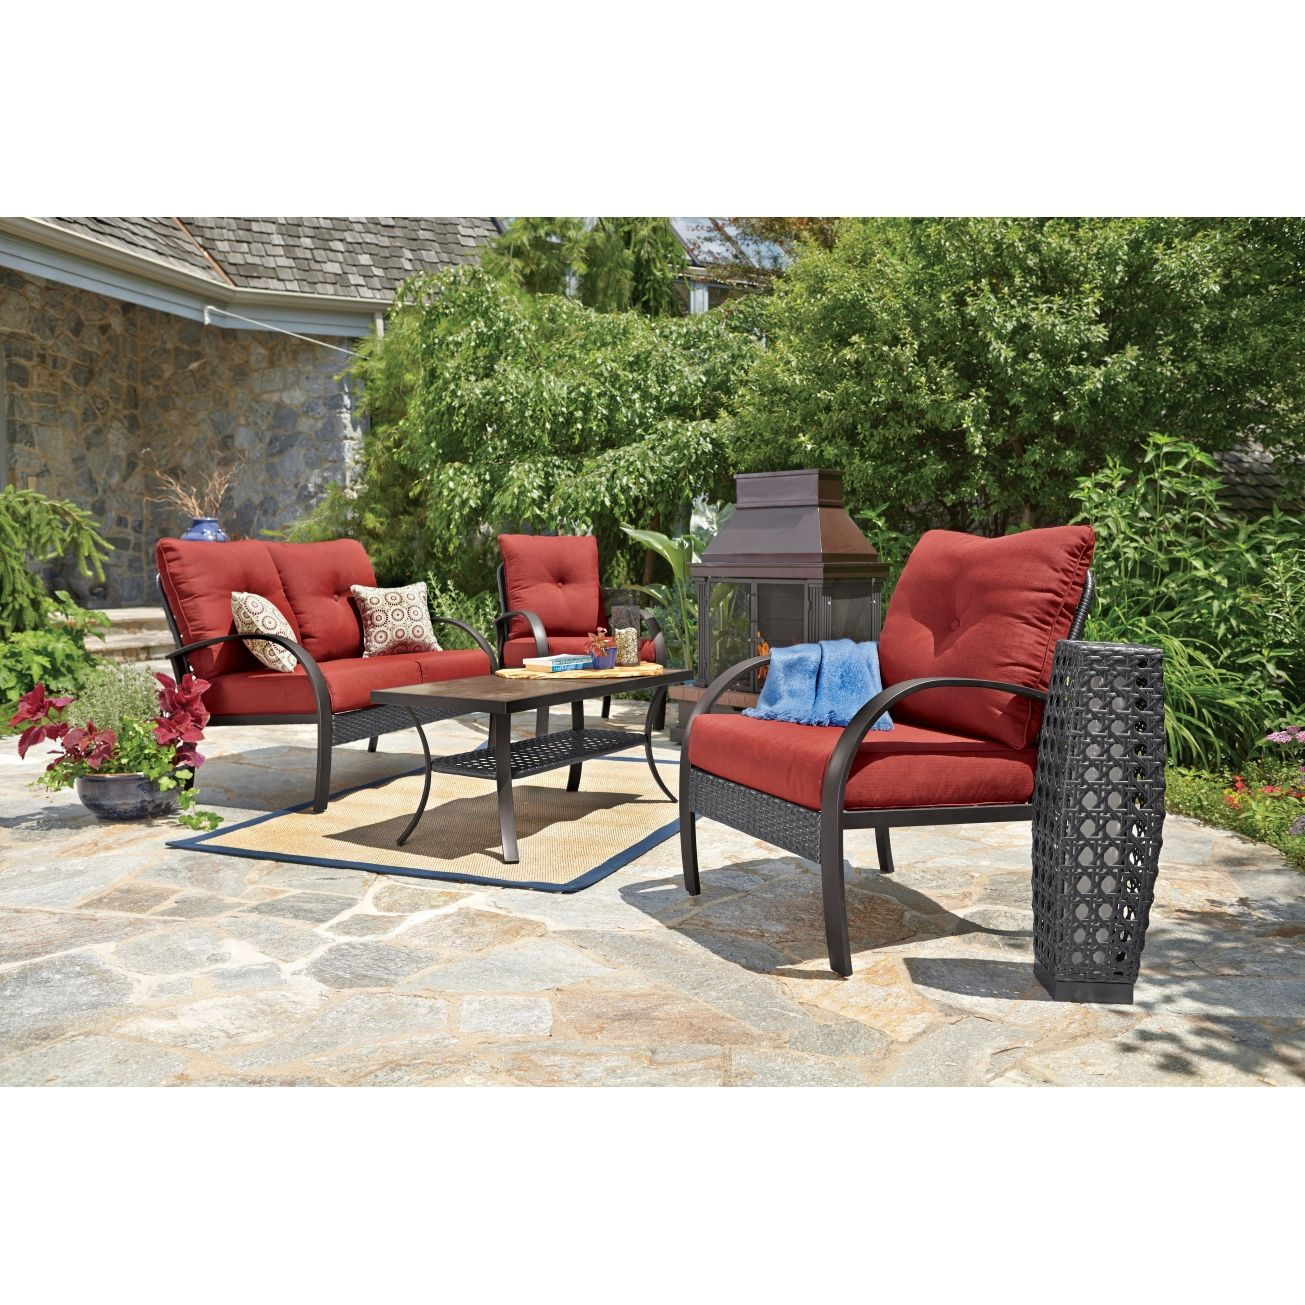 Anderson 4 Pc. Deep Seating Set - Patio Collections